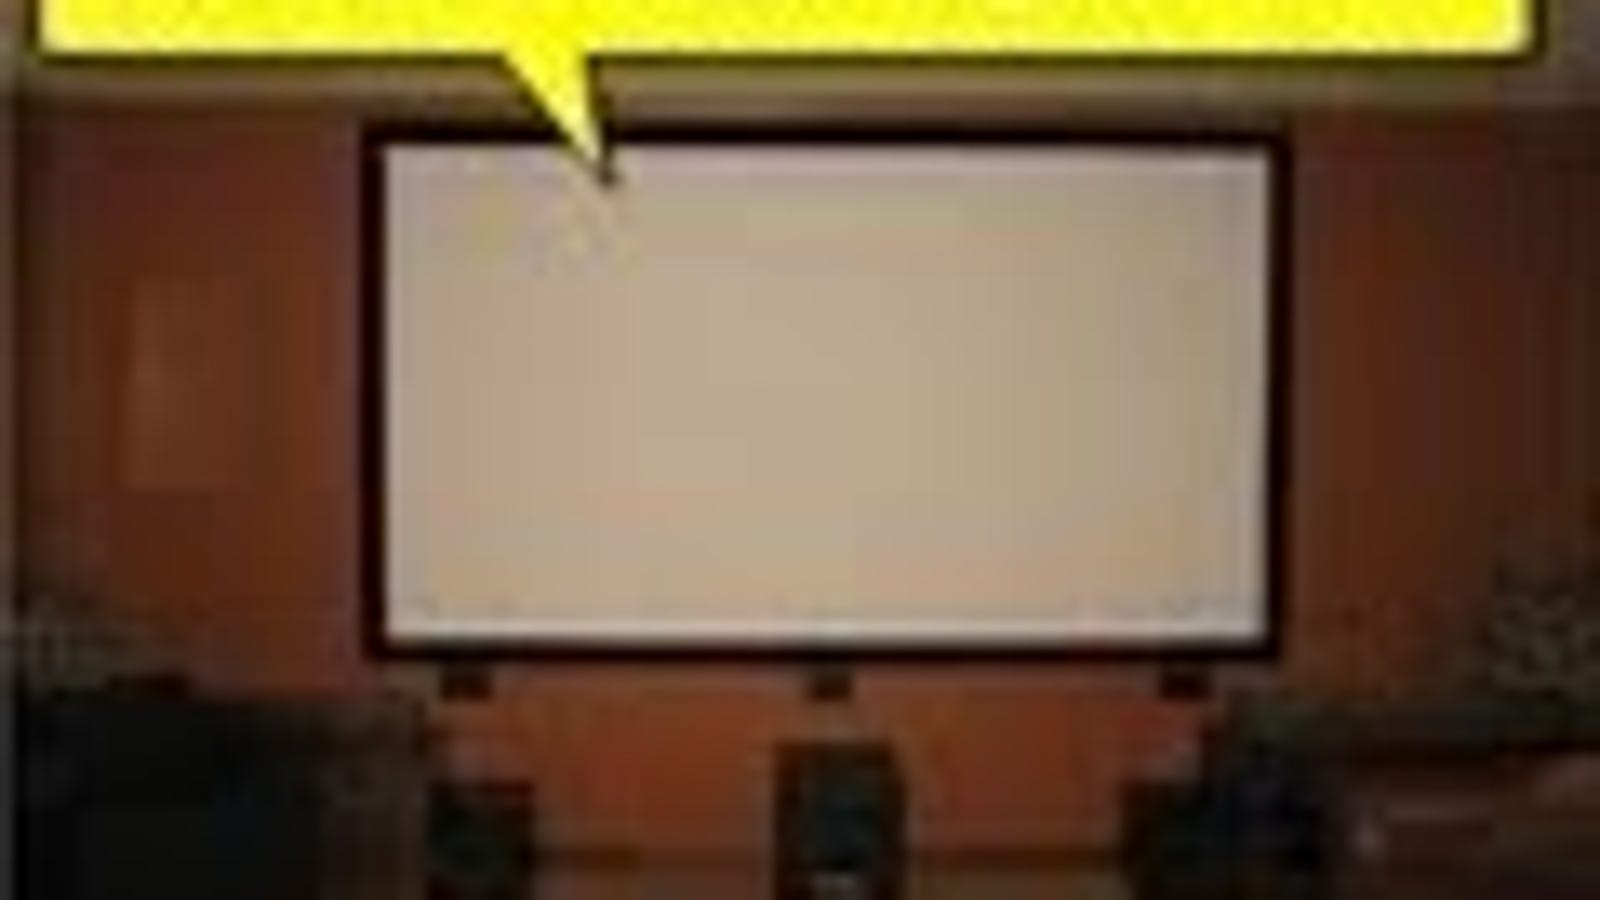 Turn Your Wall Into An Awesome Diy Projector Screen For